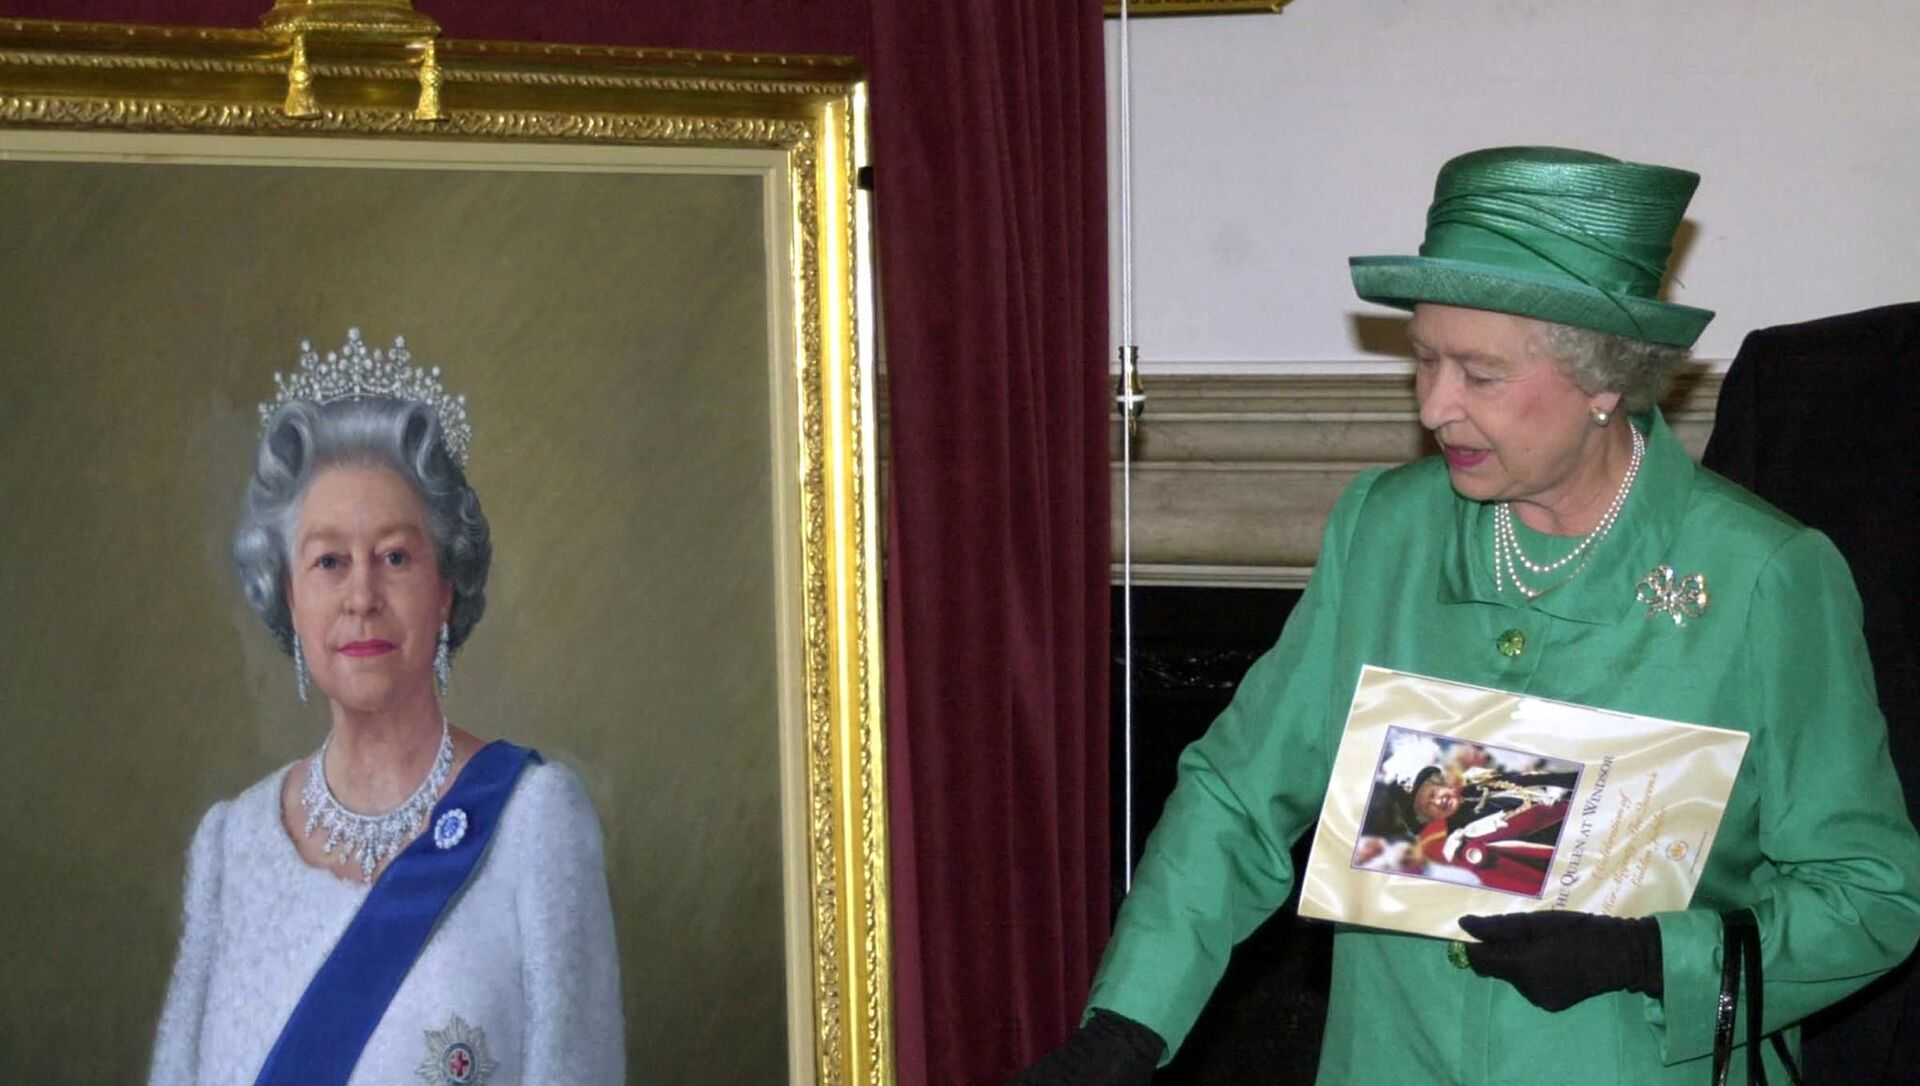 Queen Elizabeth II unveils a portrait of herself by artist Theodore Ramos at the Guildhall in Windsor, 03 June 2002, to mark her Golden Jubilee. A 1954 painting of the Queen hangs on the wall in the background - Sputnik International, 1920, 09.06.2021